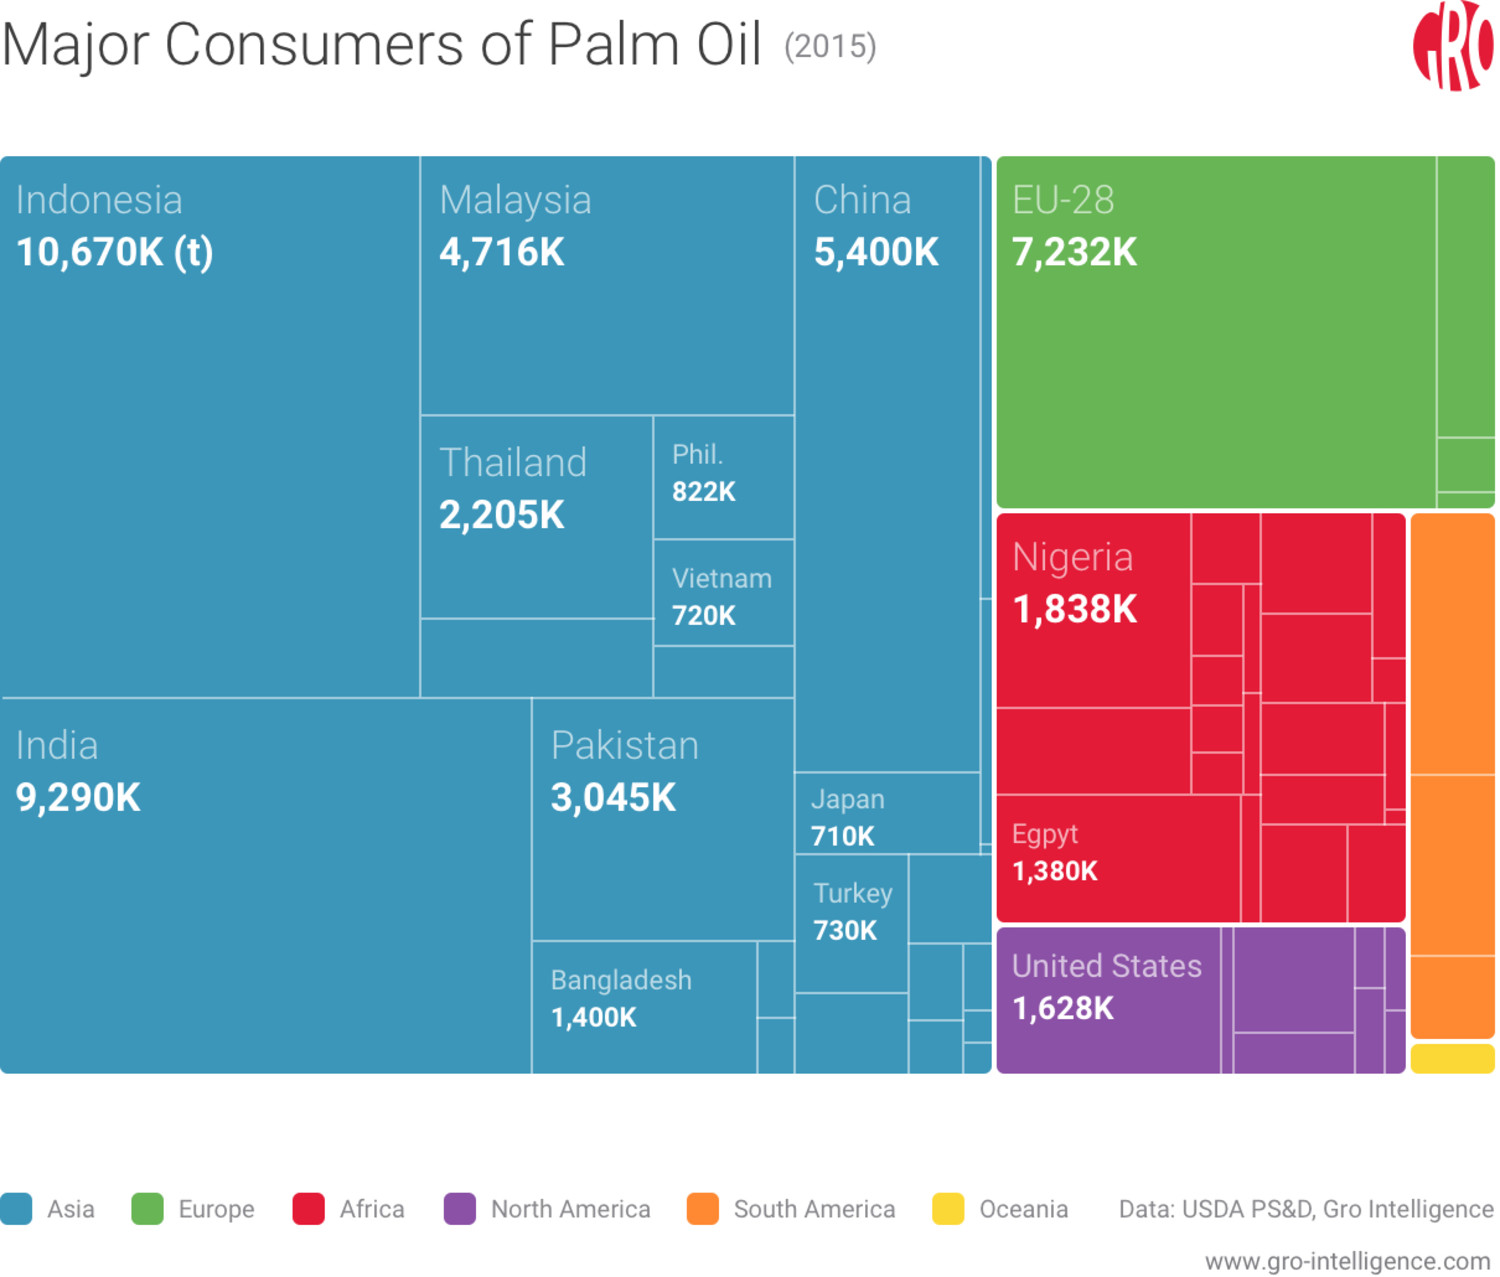 Major consumers of palm oil